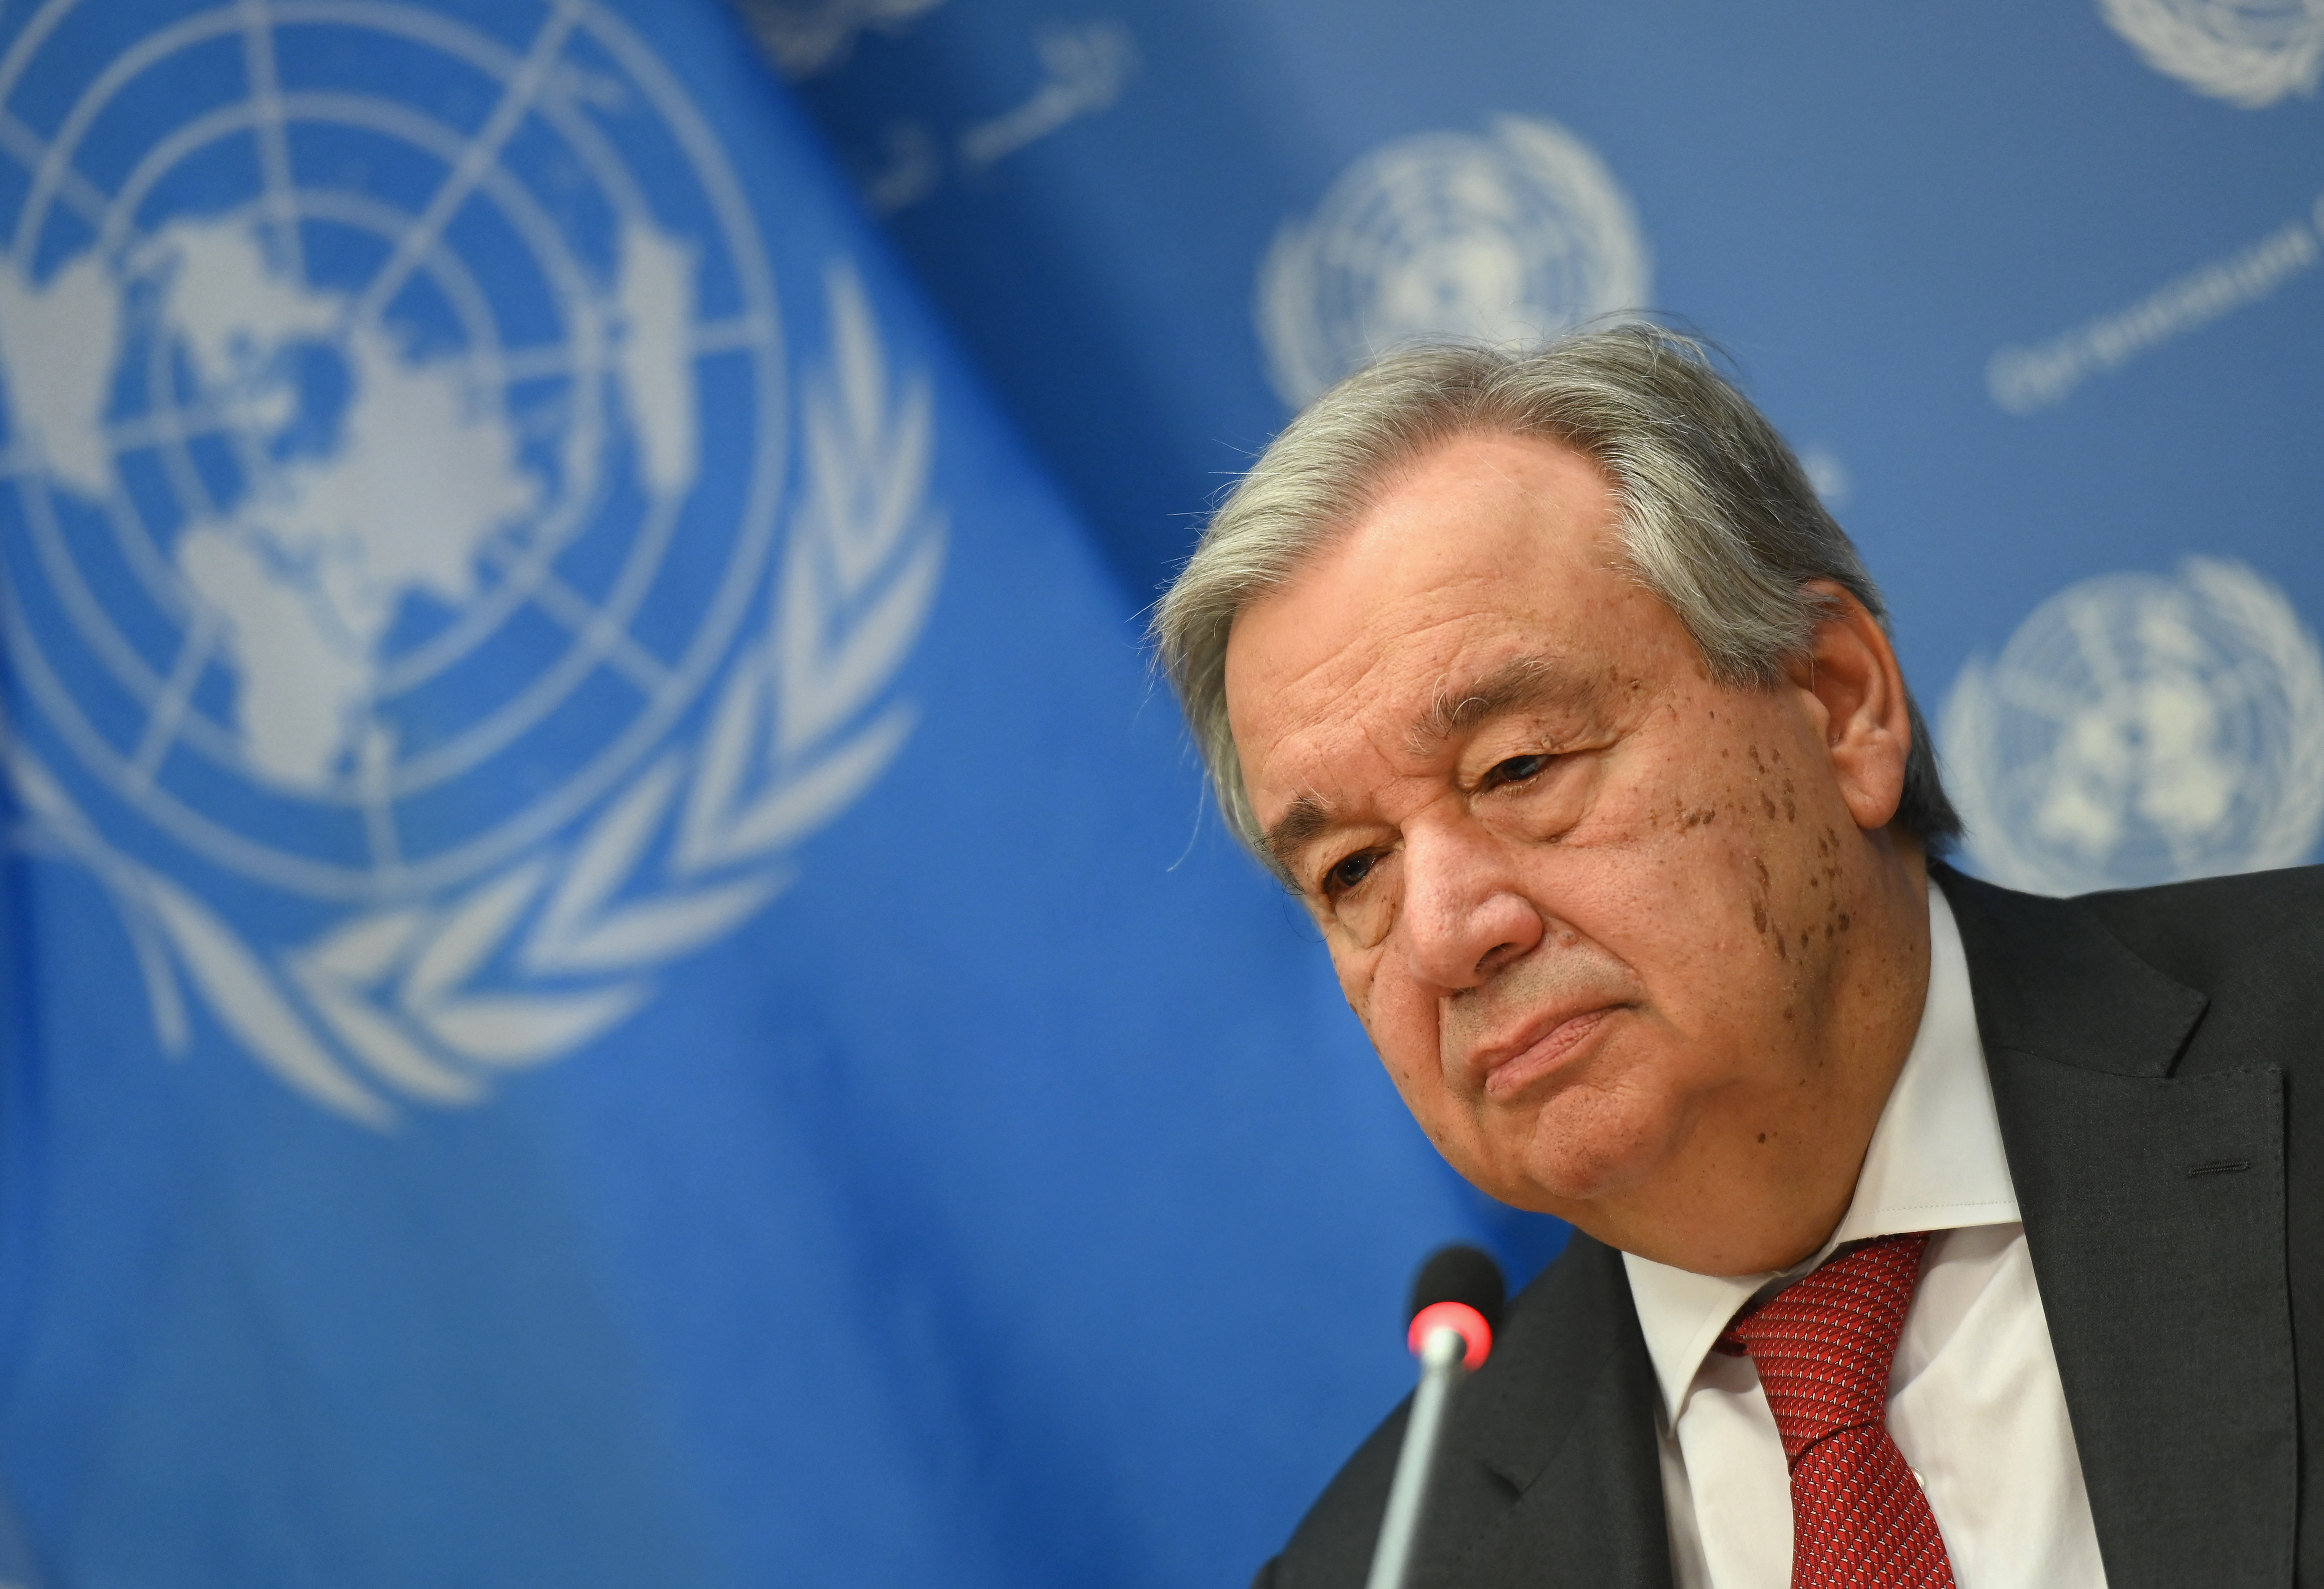 Process launched for UN secretary-general selection, appointment: spokesperson